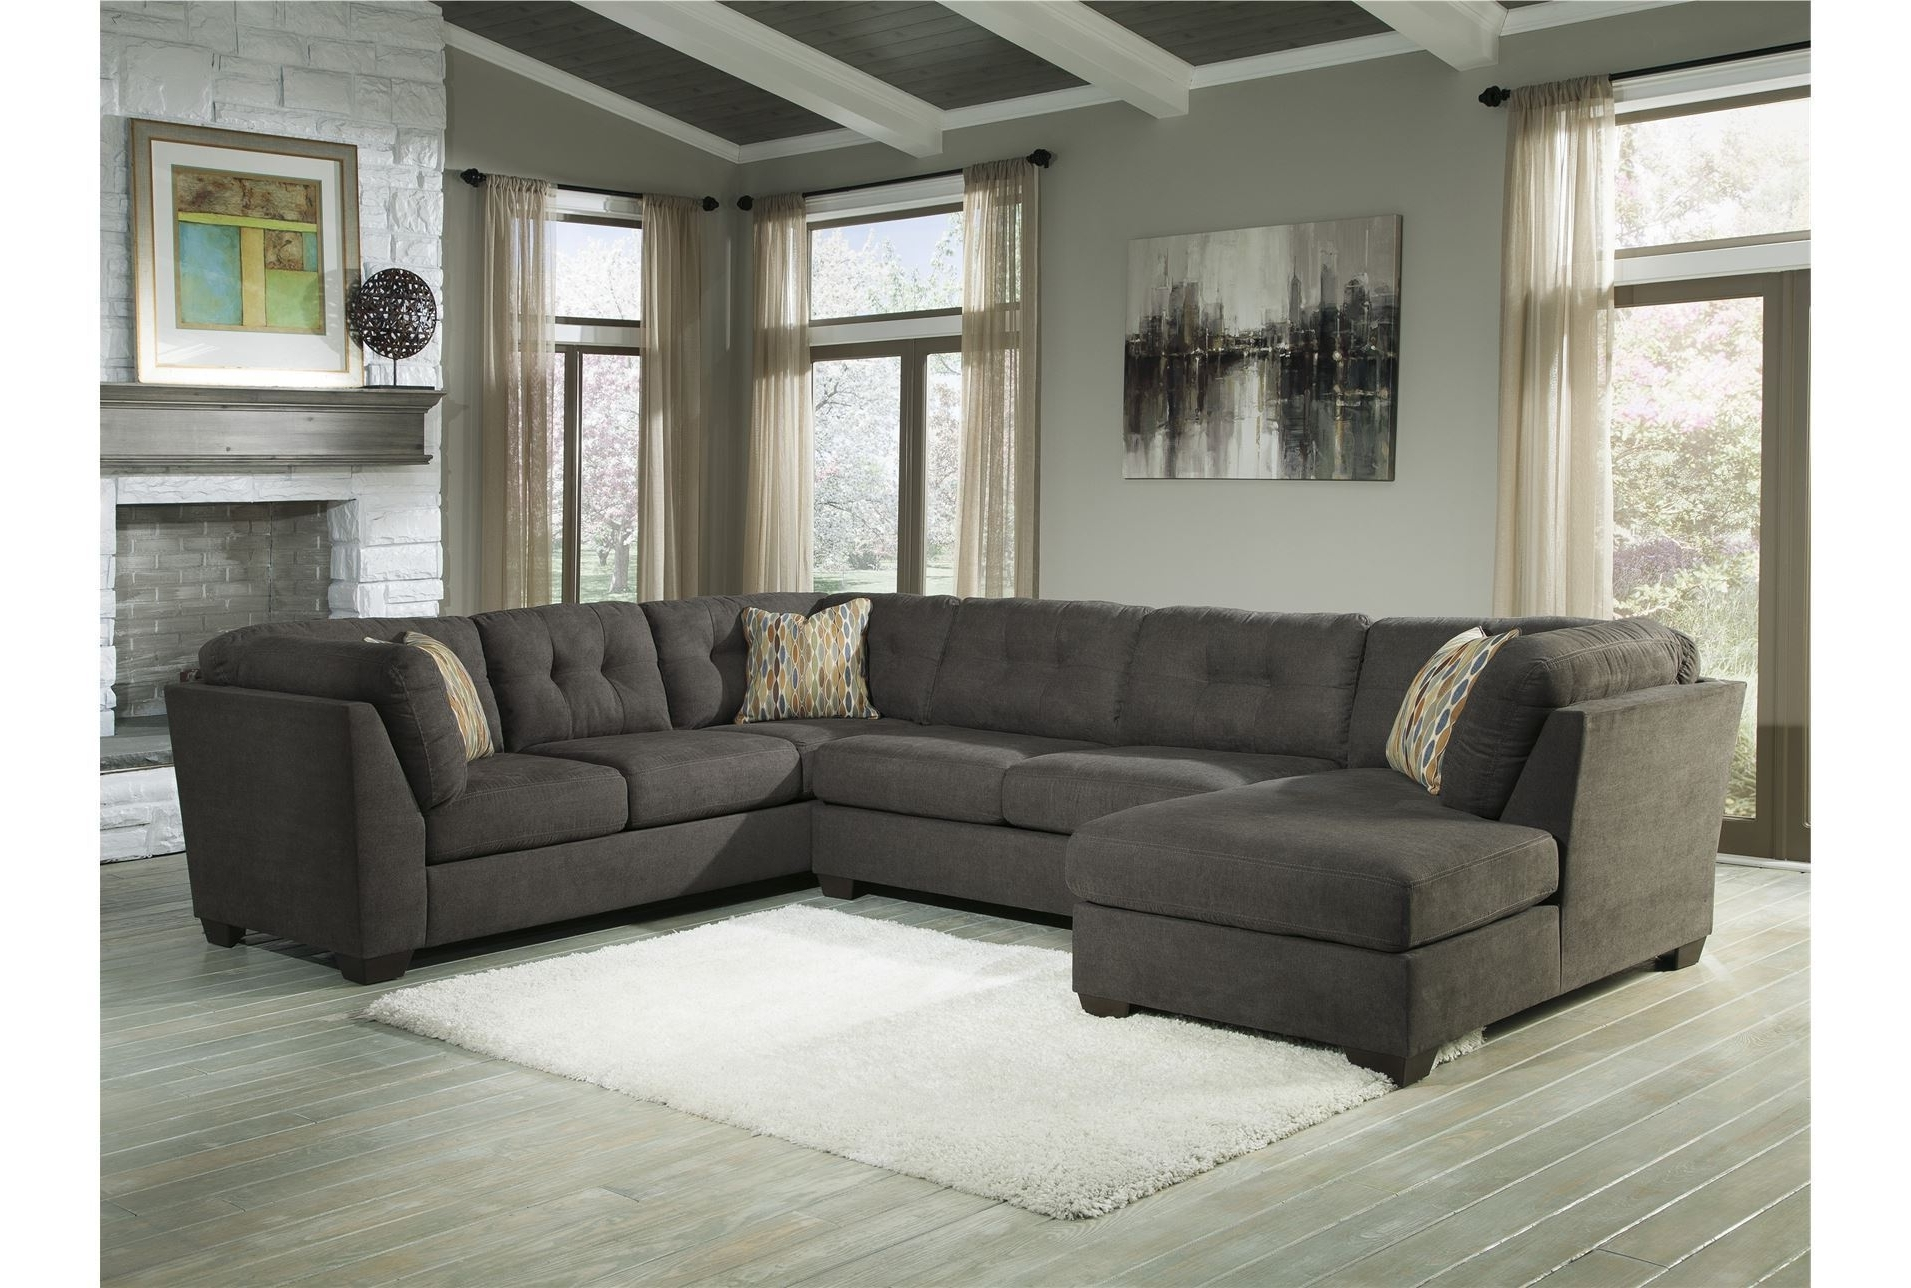 Gray U Shaped Sectionals Intended For Preferred Delta City Steel 3 Piece Sectional W/laf Chaise  Living Room (View 15 of 20)